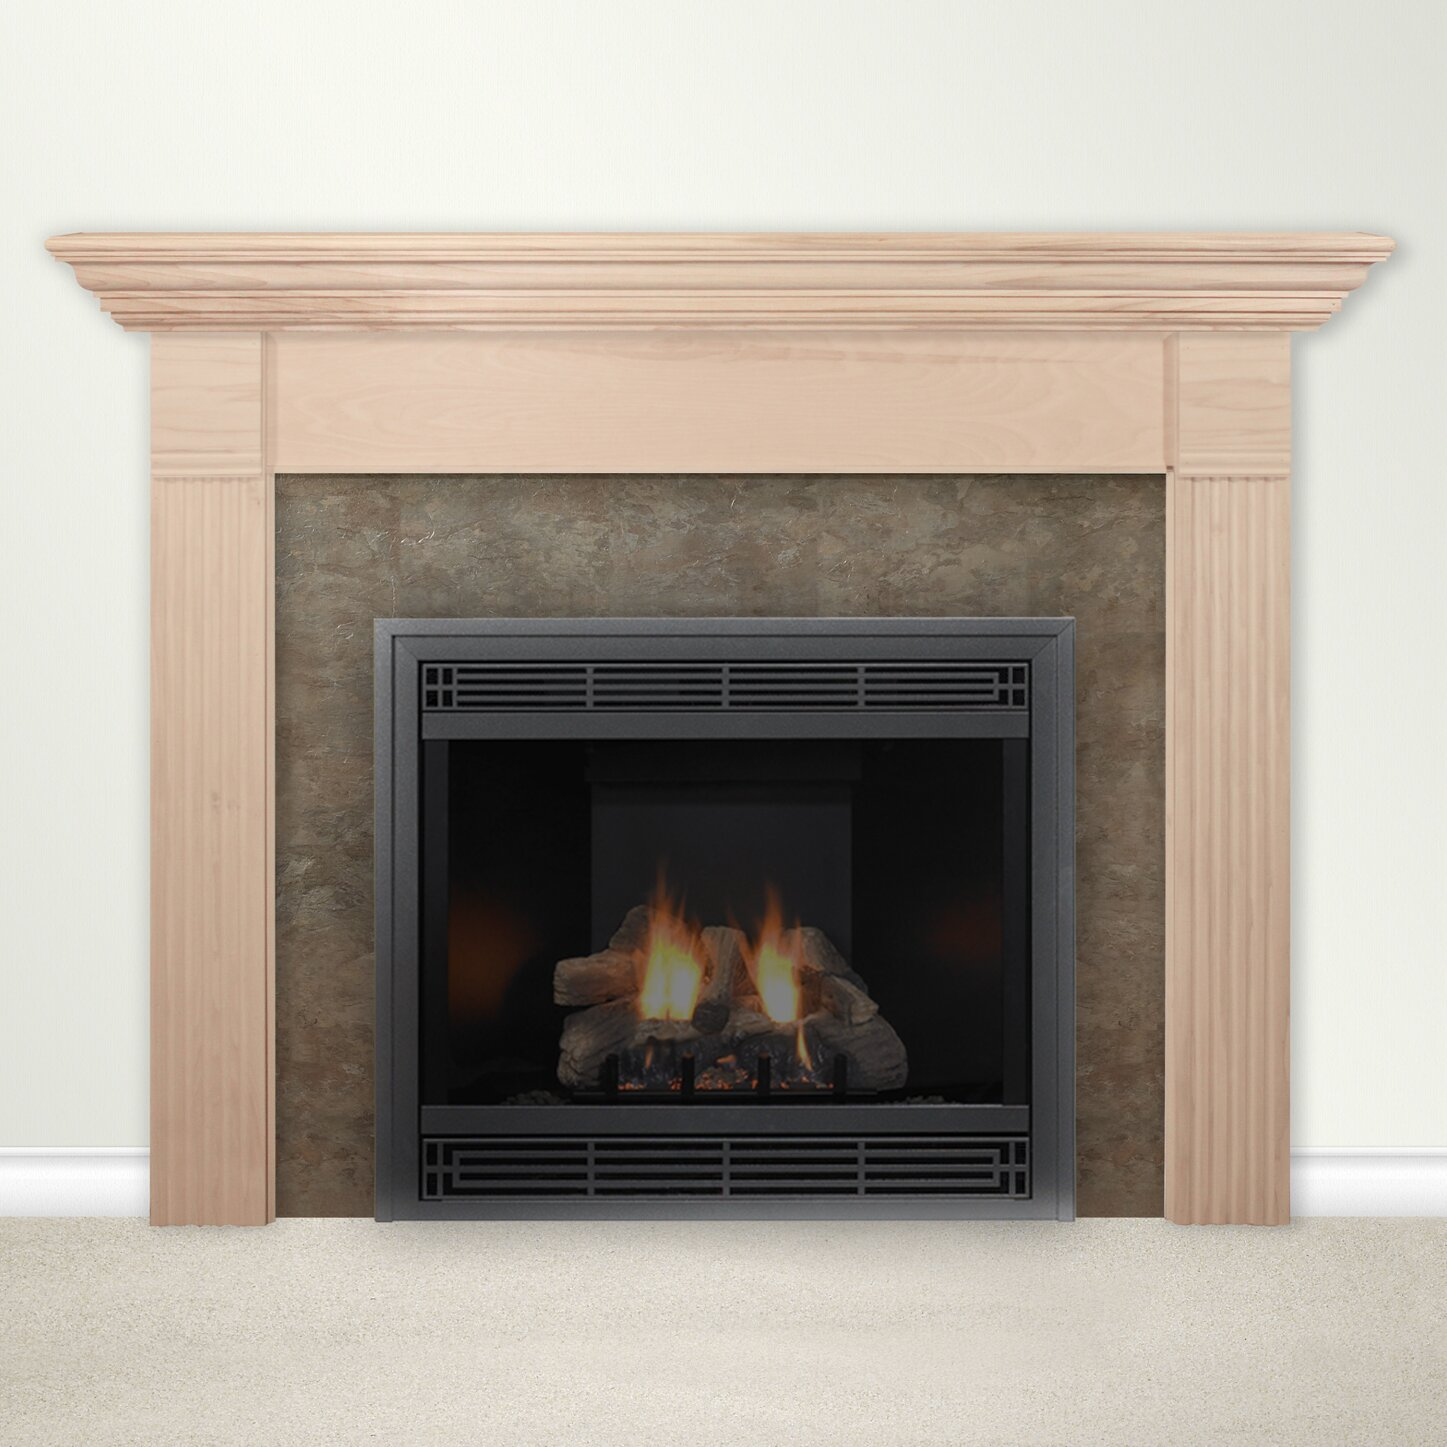 housewarmer fireplace mantel surround with shelf reviews wayfair. Black Bedroom Furniture Sets. Home Design Ideas